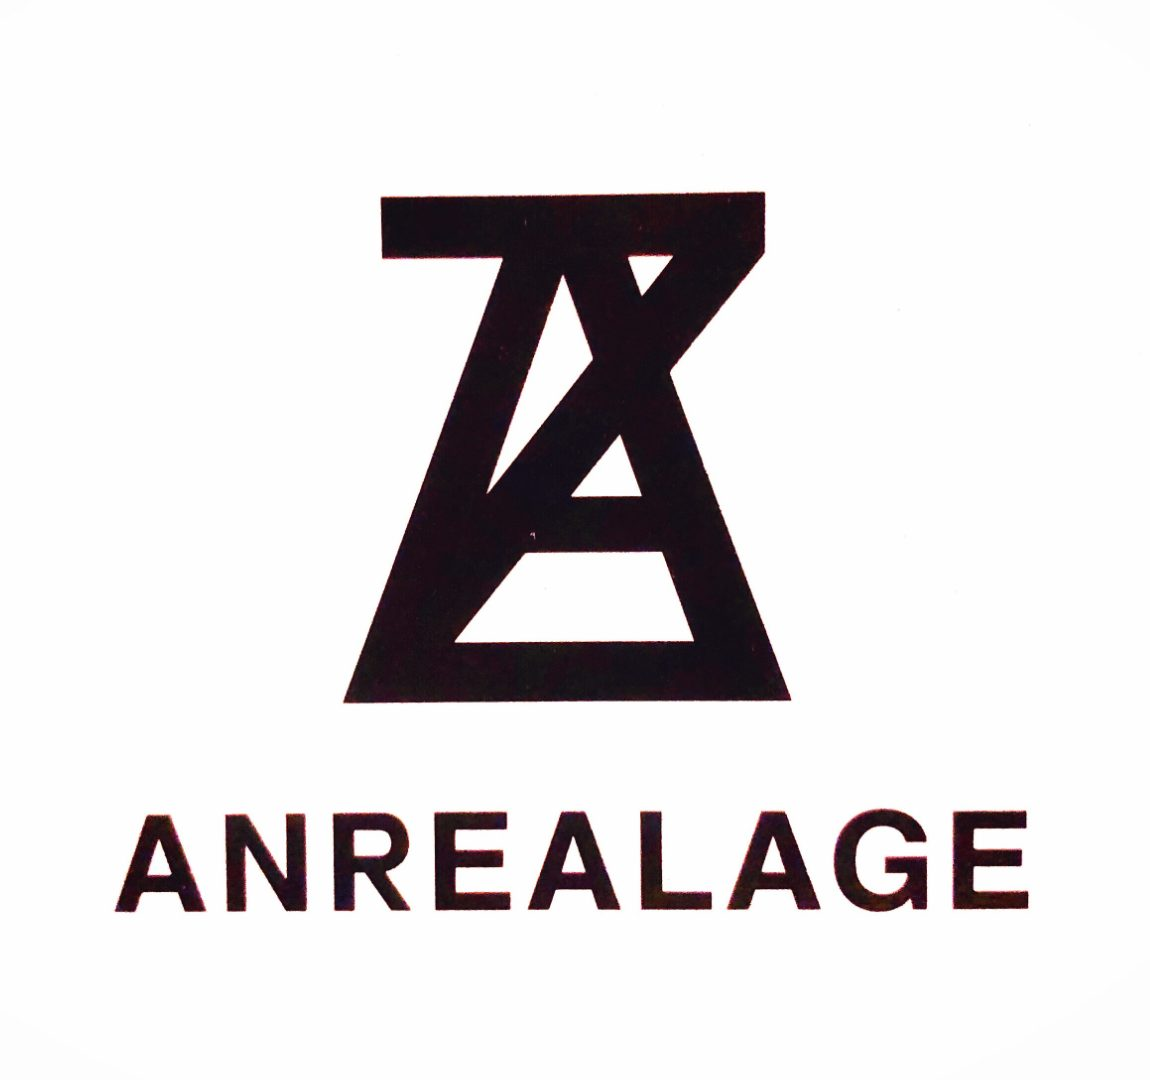 ANREALAGE